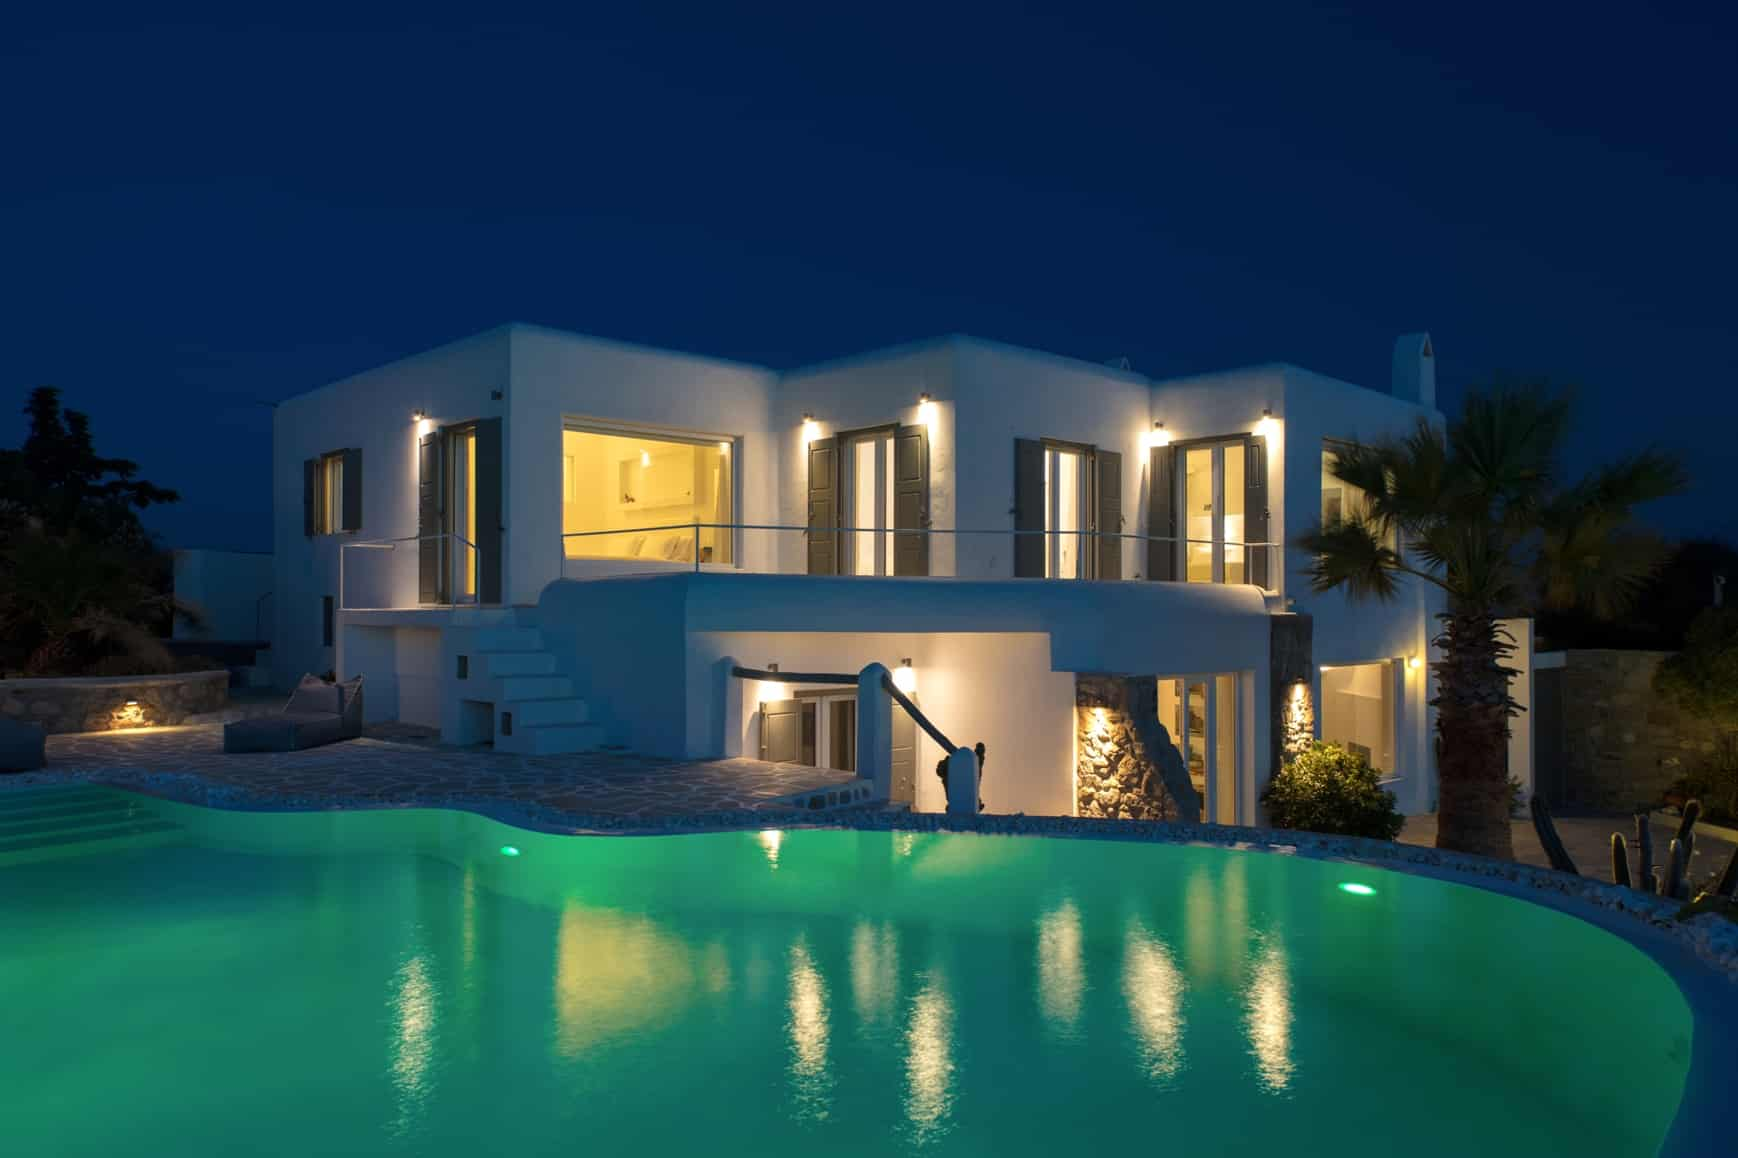 villa-at-night